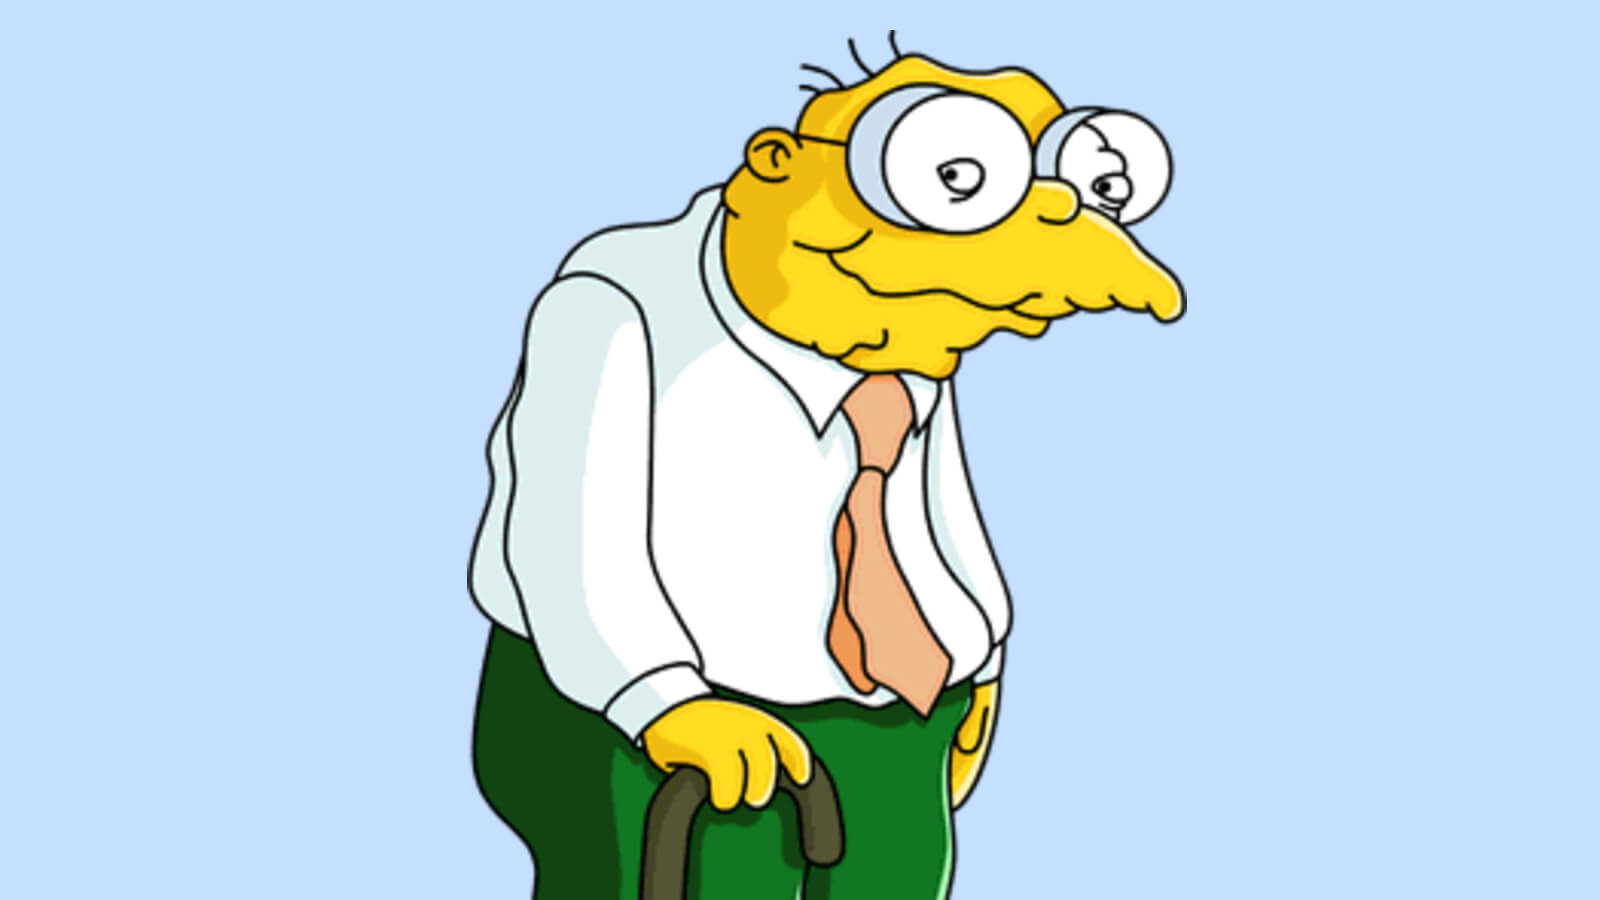 Hans Moleman from The Simpsons cartoon characters with glasses